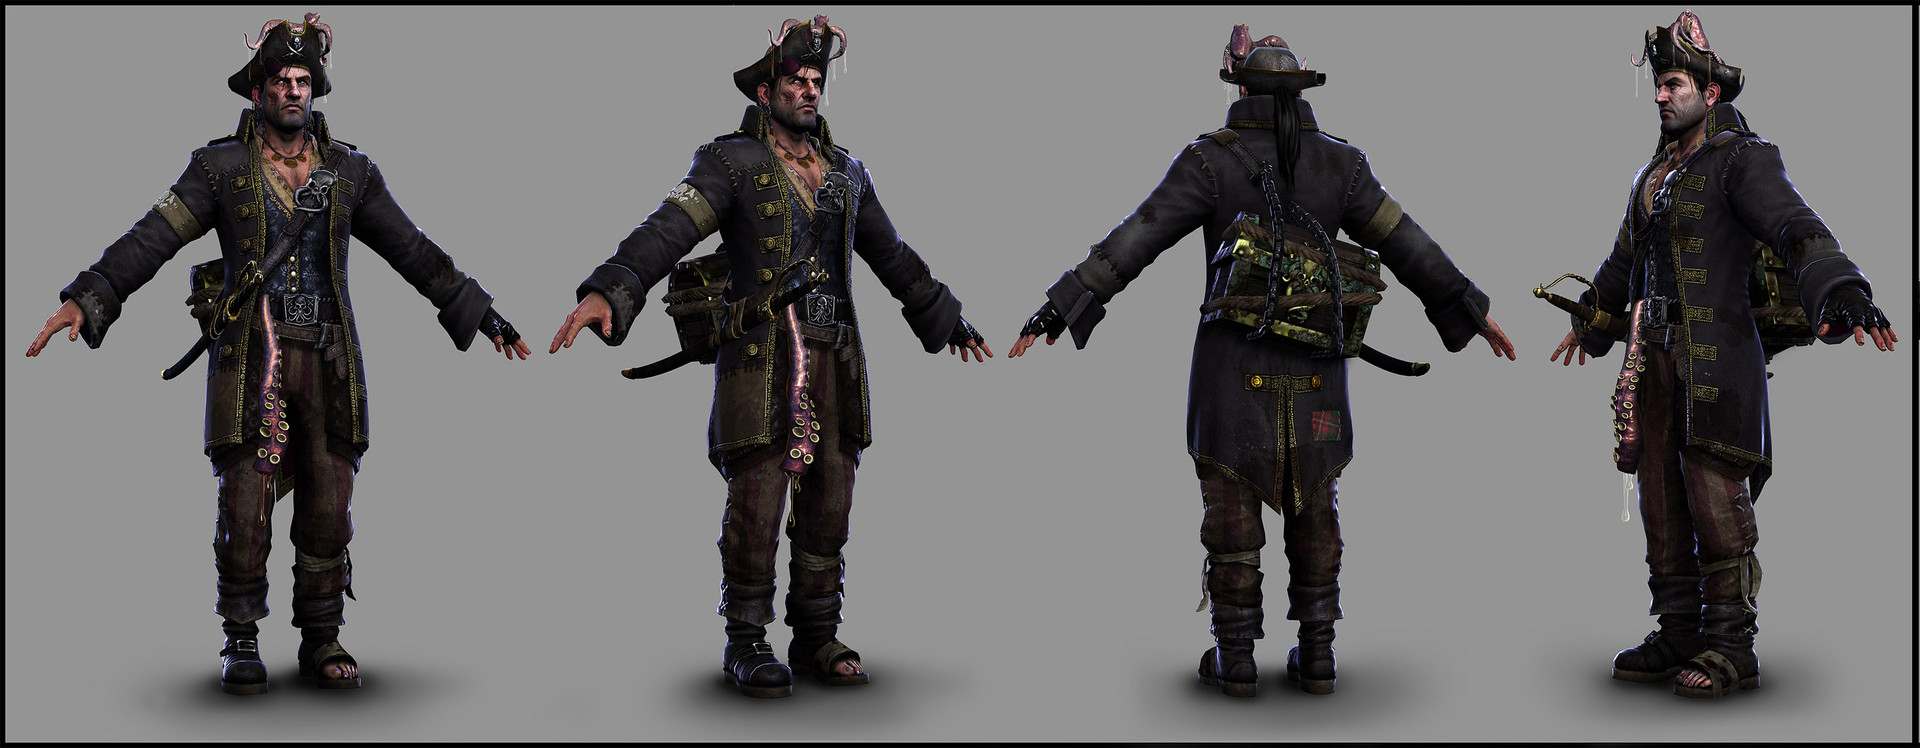 Sam chester samchester pirate body turnaround small zcentral